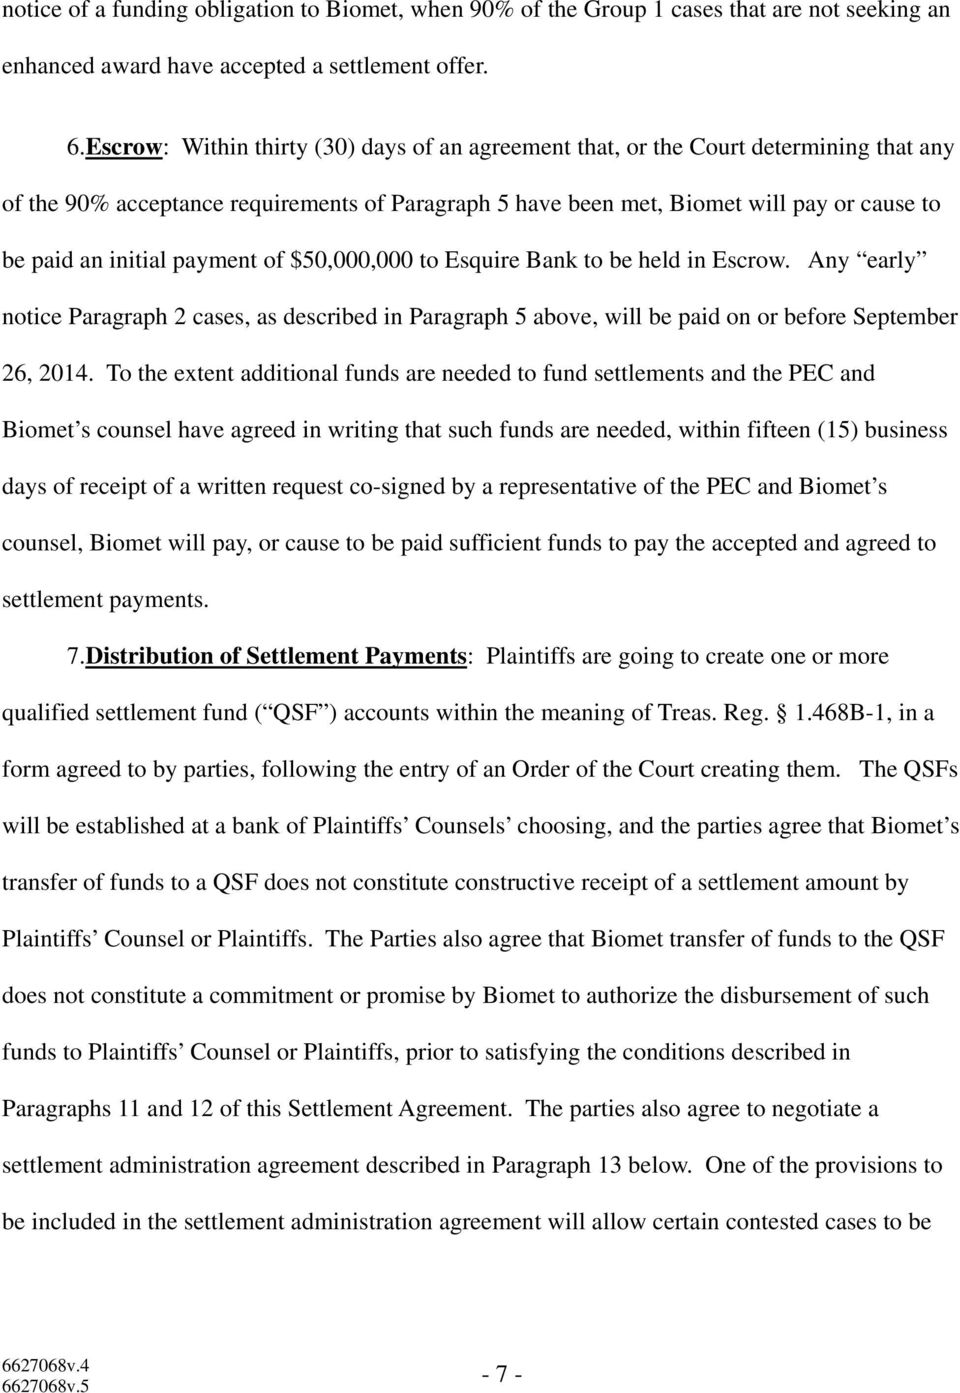 payment of $50,000,000 to Esquire Bank to be held in Escrow. Any early notice Paragraph 2 cases, as described in Paragraph 5 above, will be paid on or before September 26, 2014.